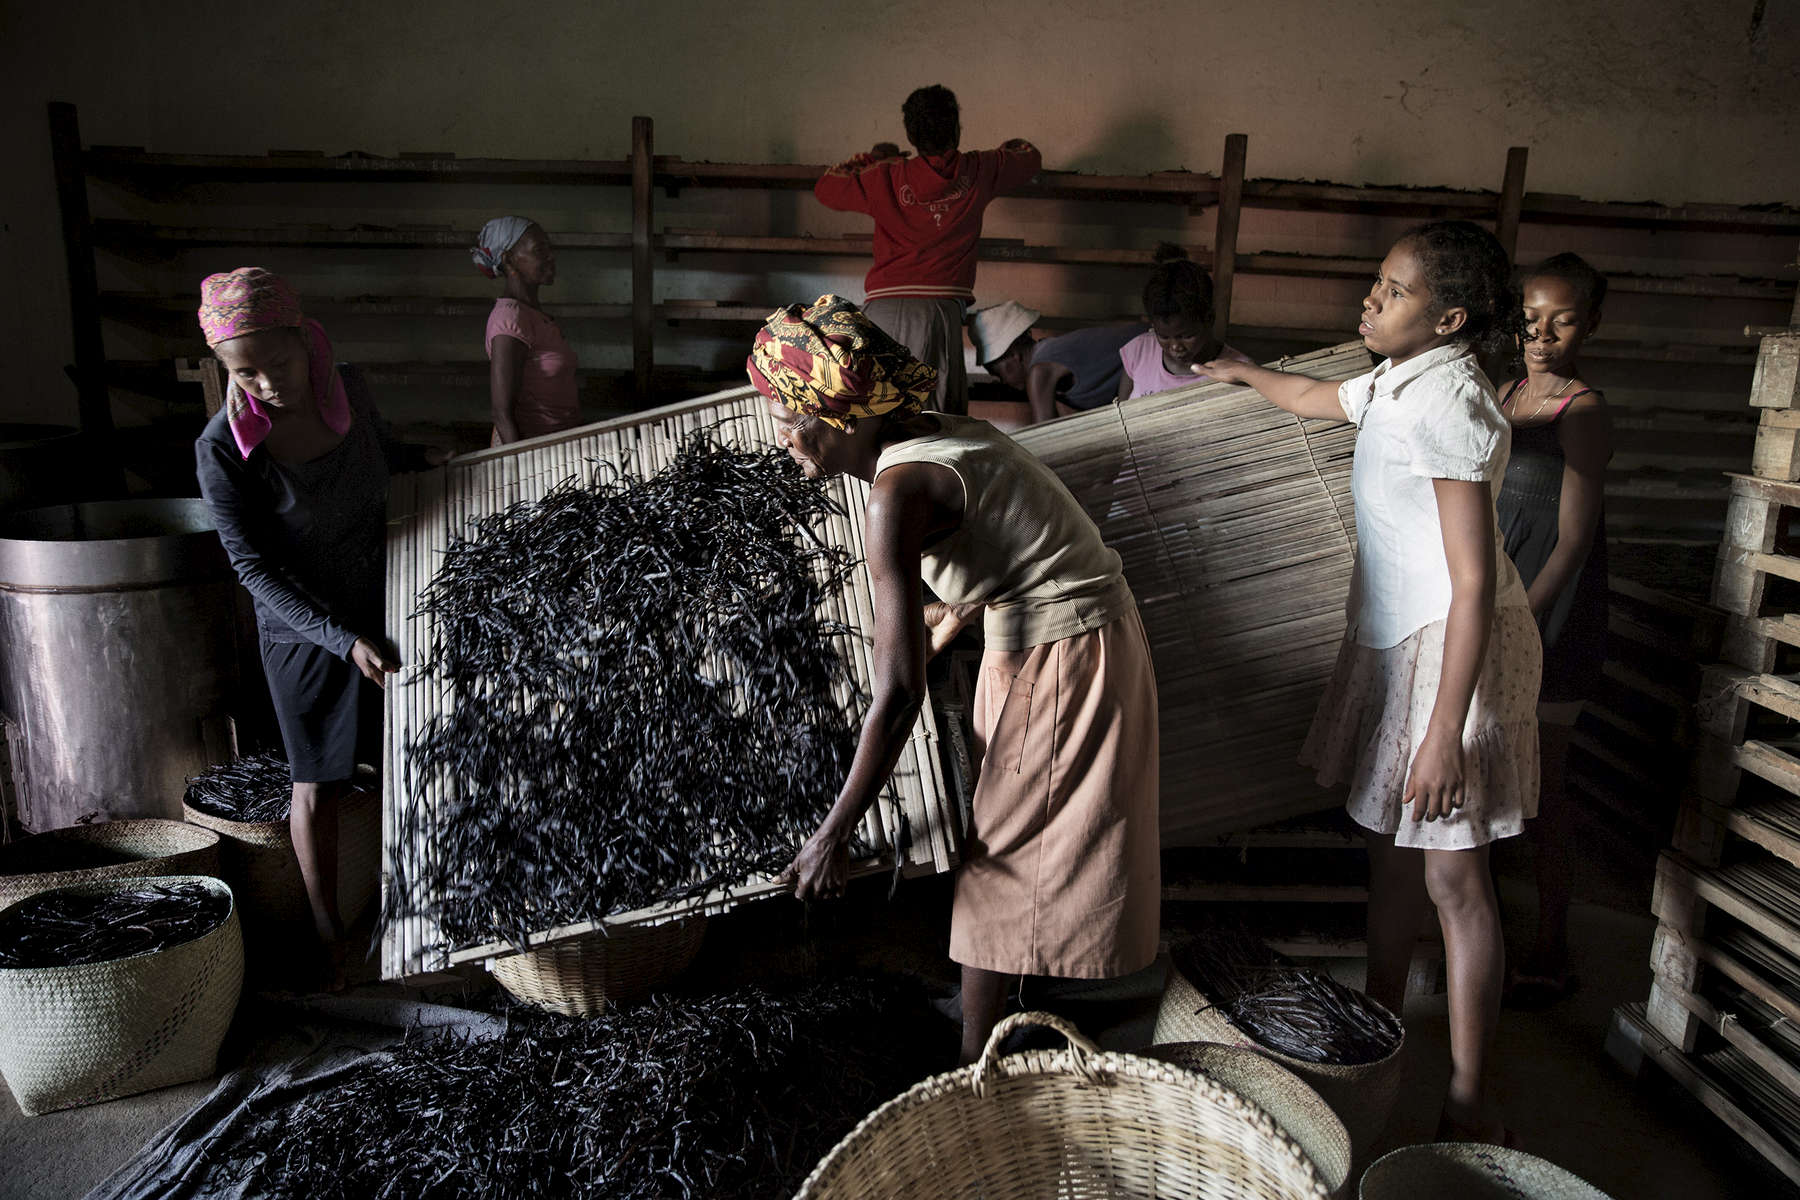 Near Ambanja, the French company Biolandes, the world leader in natural flavors, selects vanilla beans that will be transformed into natural essences, especially for perfumery and cosmetics.